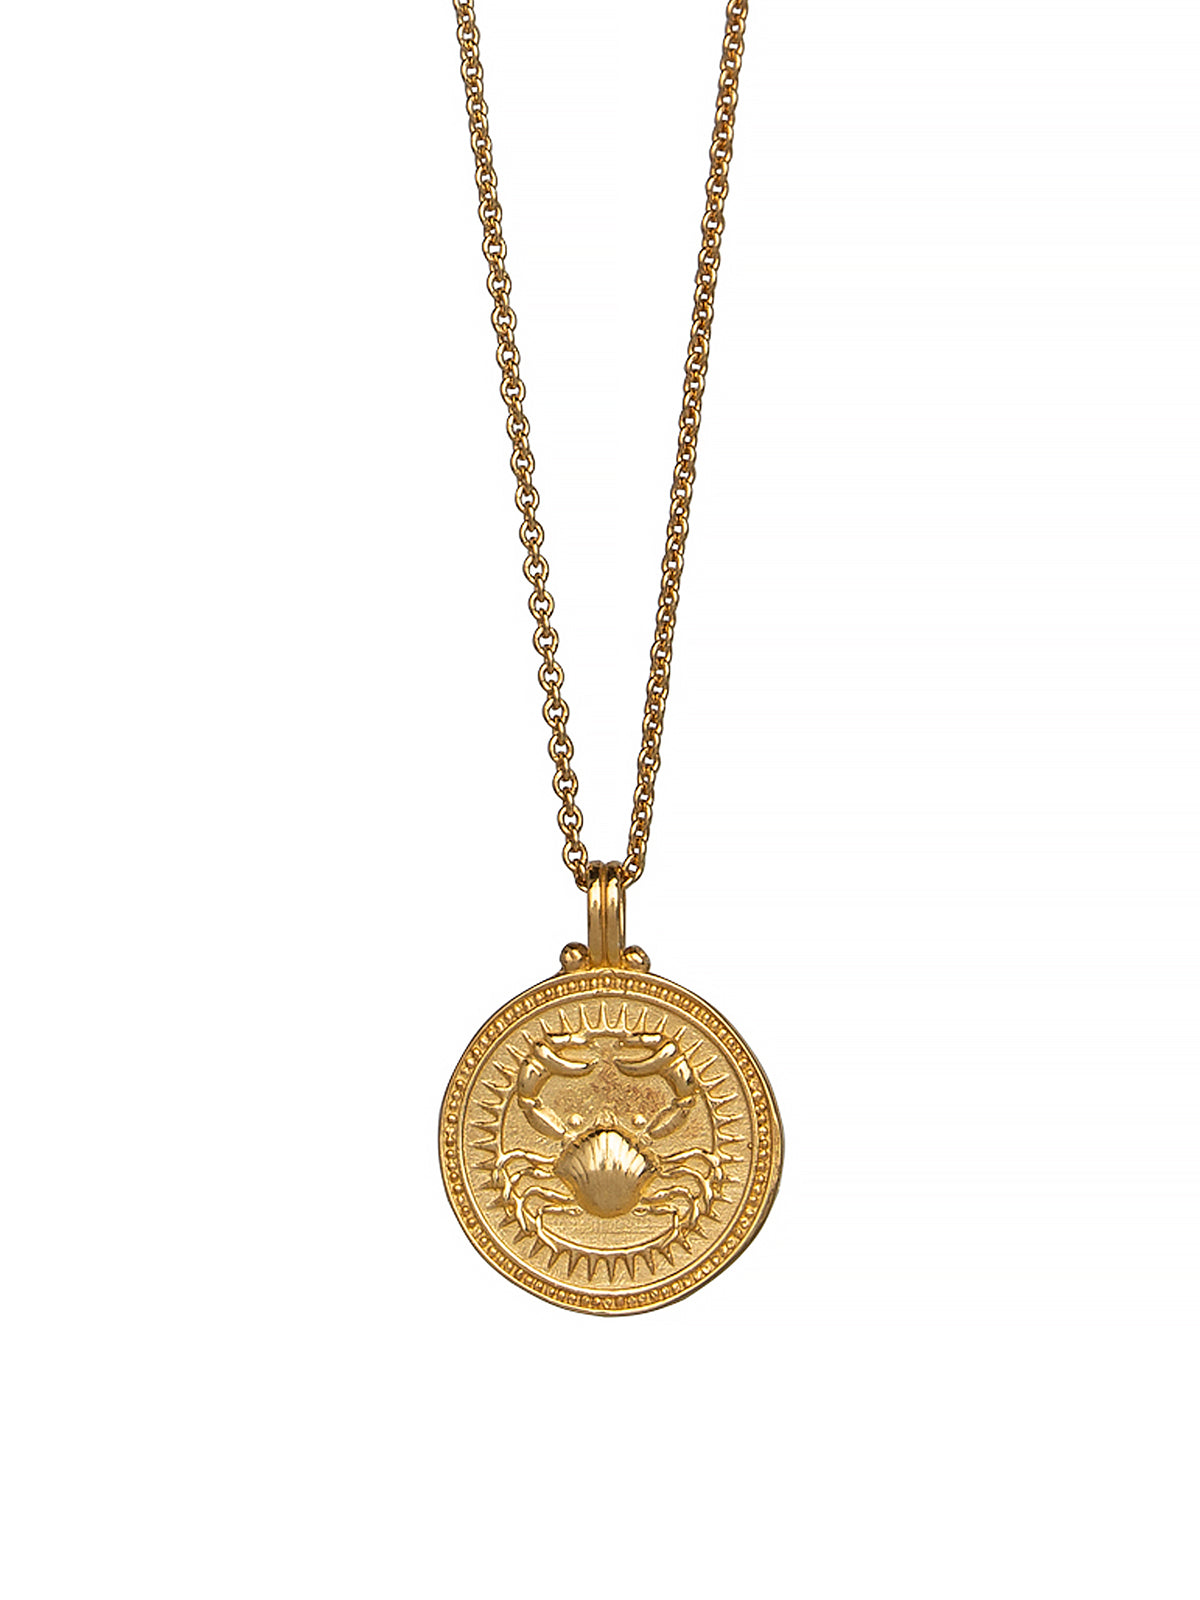 Cancer Zodiac Necklace Gender Neutral 23c Vermeil. 蟹座 星座